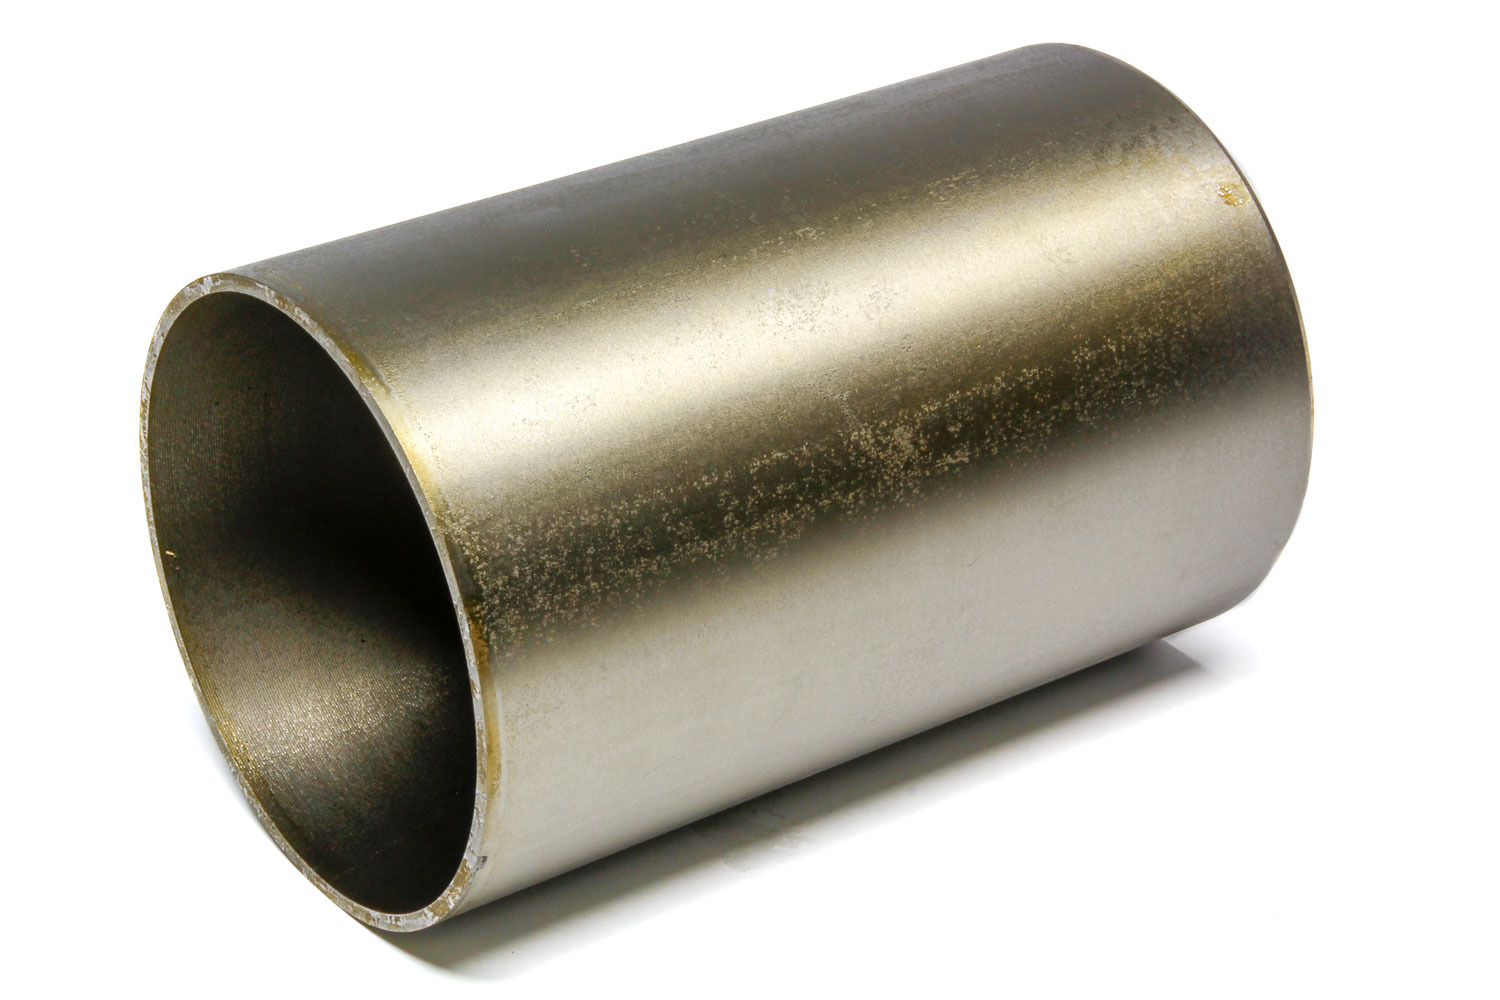 Melling Replacement Cylinder Sleeve 4.1875 Bore Dia.